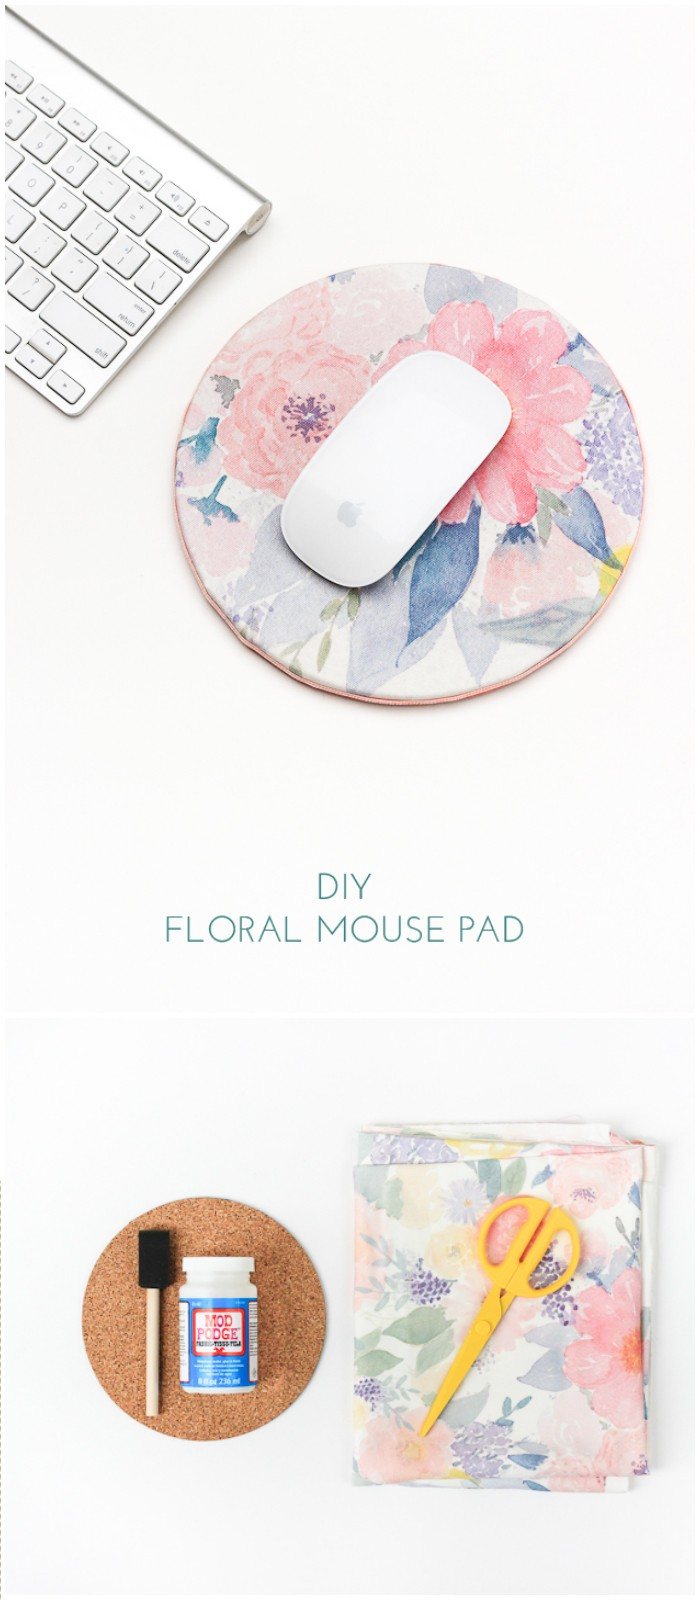 DIY Floral Mouse Pad Dollar Store Home Organizing Ideas